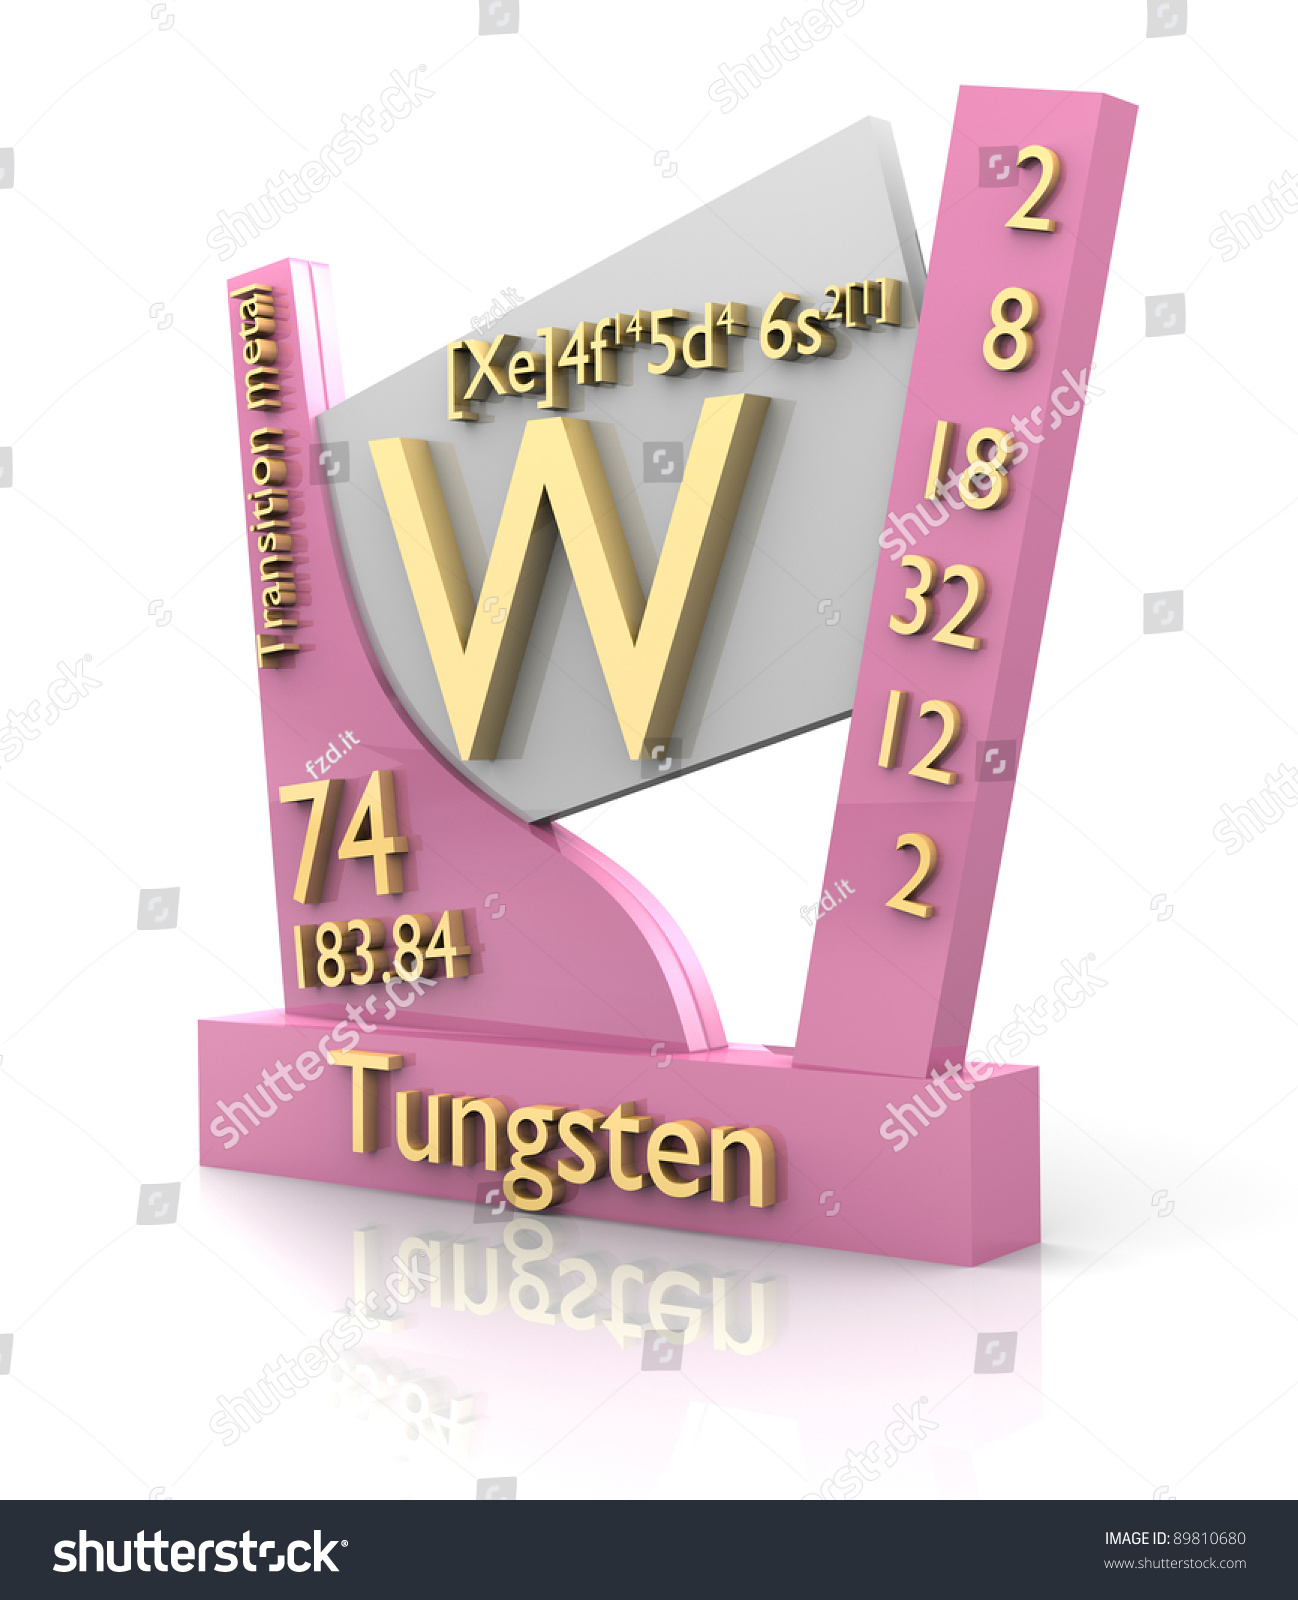 Tungsten form periodic table elements 3d stock - Tungsten symbol periodic table ...